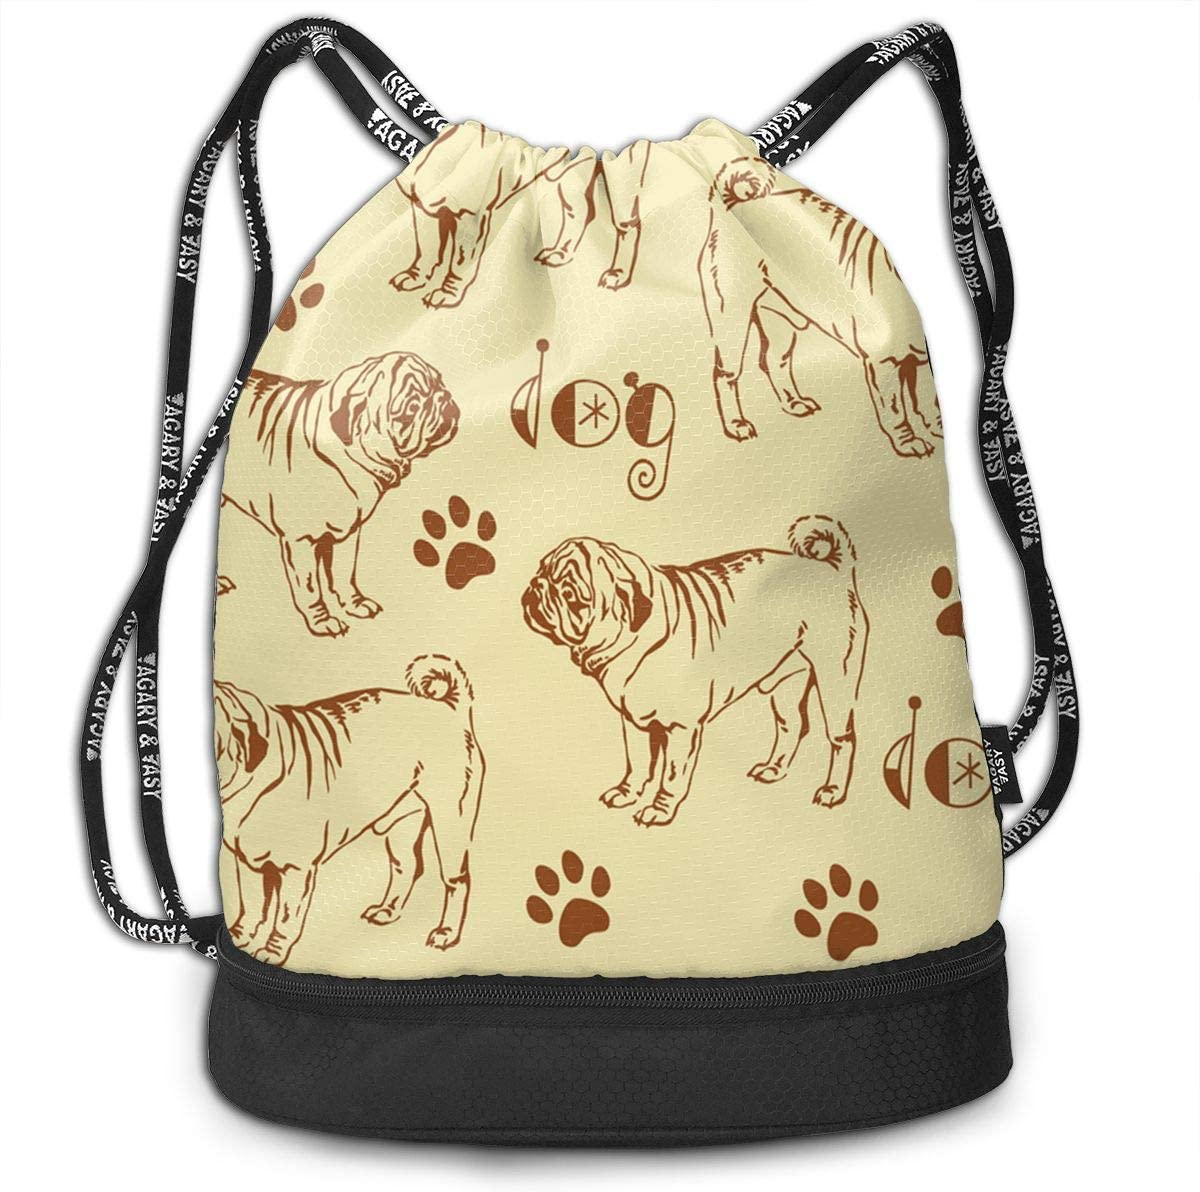 Drawstring Backpack Pug Life Shoulder Bags